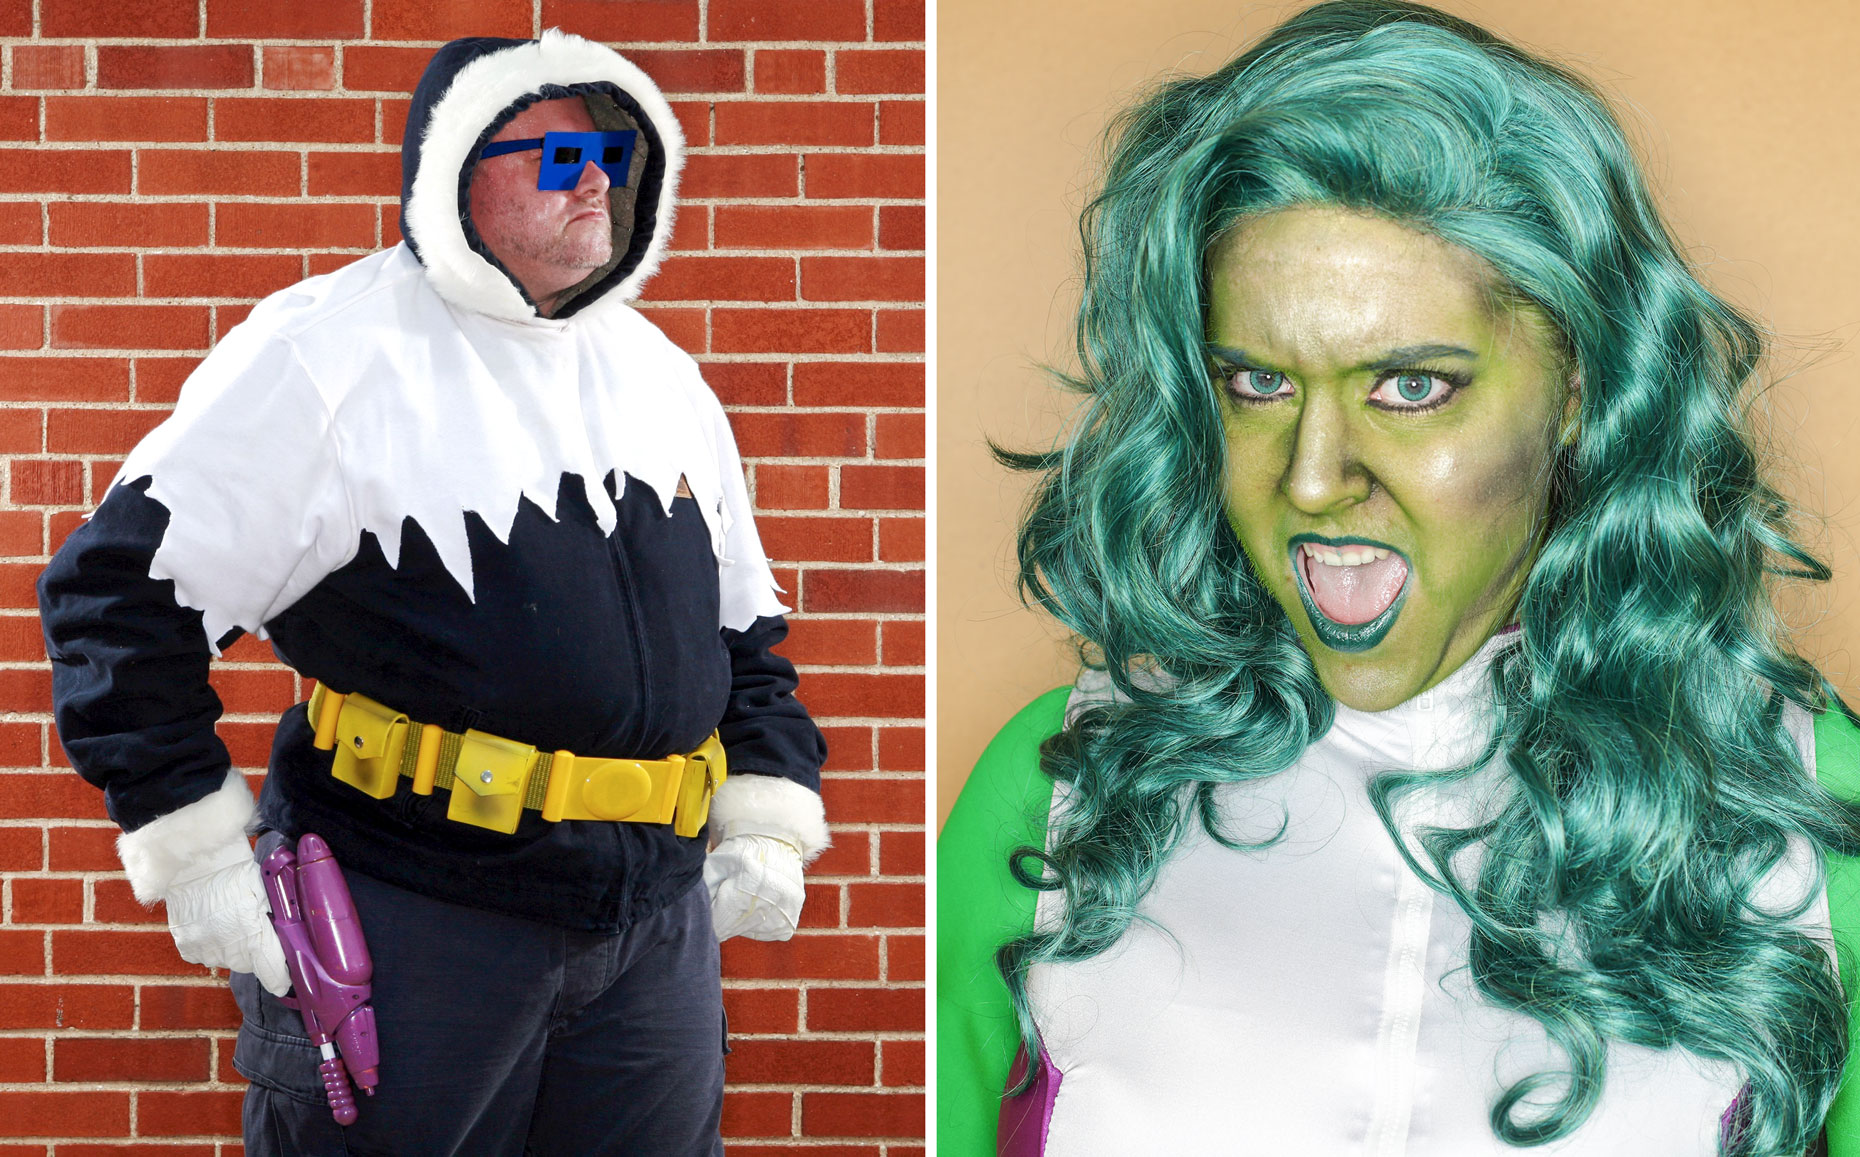 JOHNNY ANDREWS PHOTOGRAPHY :: PORTRAITURE :: Captain Cold and She-Hulk